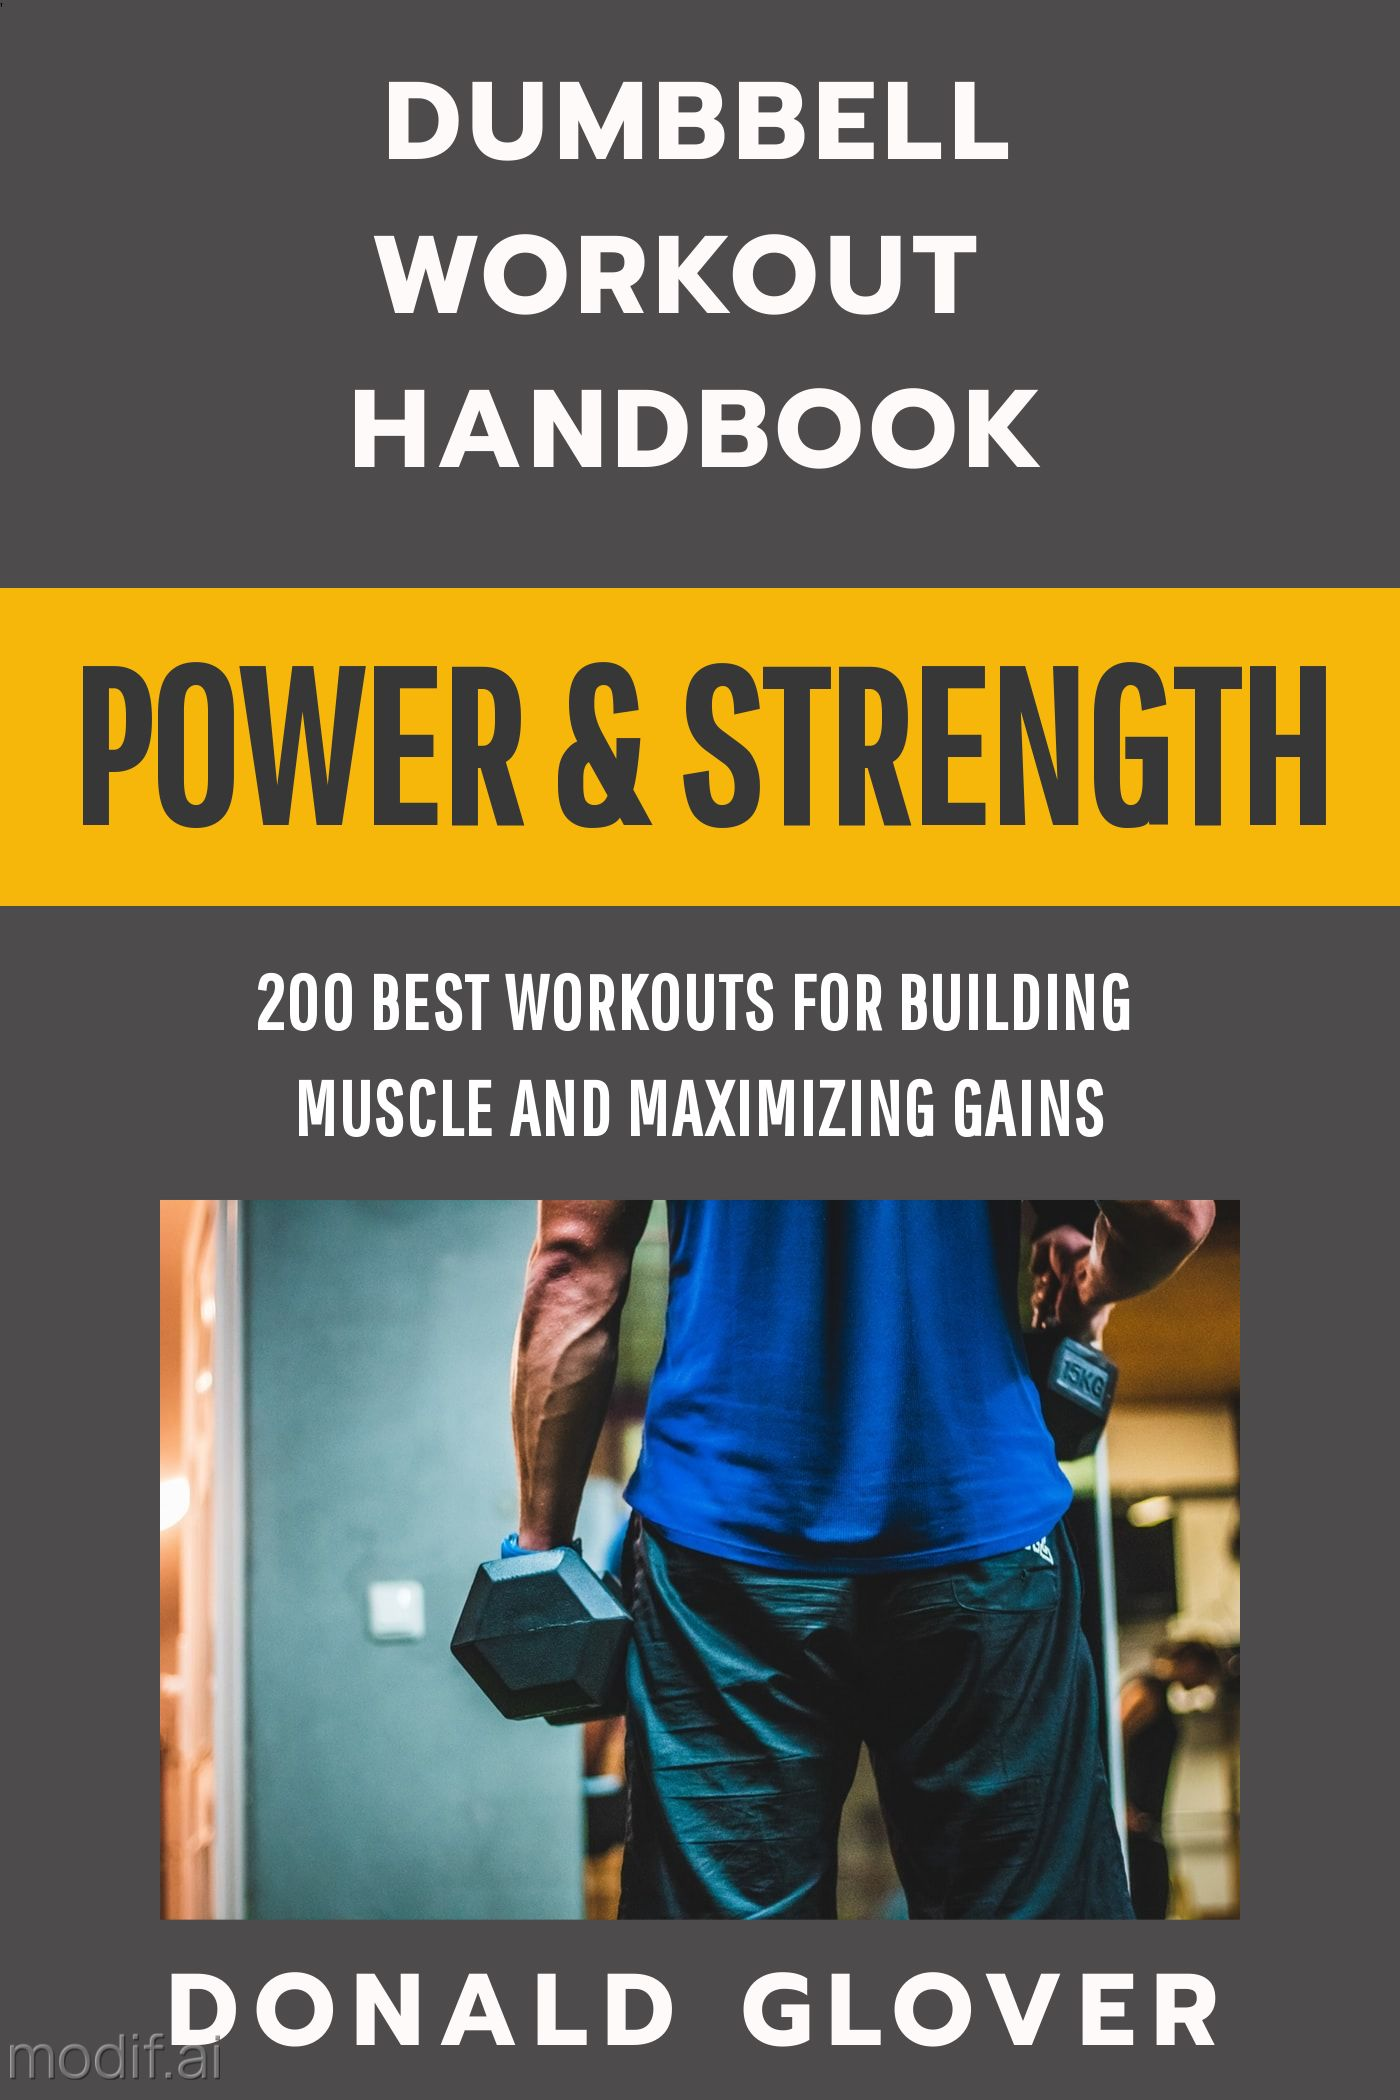 Power and Strength Workout Book Cover Maker